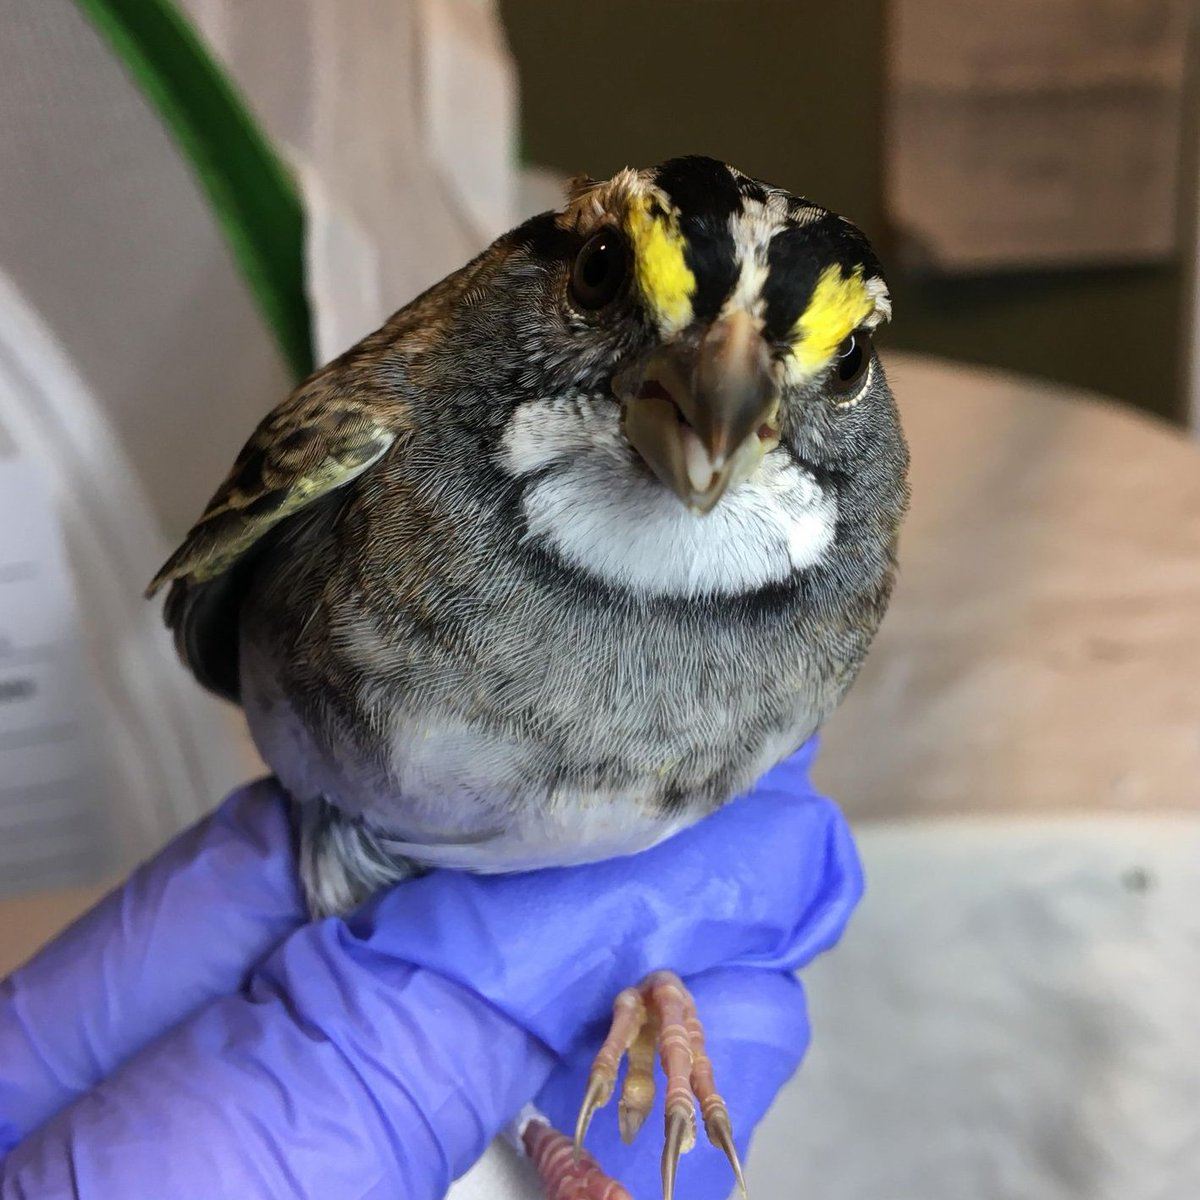 On behalf of this impeccably attired white-throated sparrow, we bid a good evening to everyone except for the window @BFPLny he collided with. Actually, we'll just go ahead and un-greet all the lower-level windows @BFPLny until they are made safe for birds. 📷: Phyllis Tseng